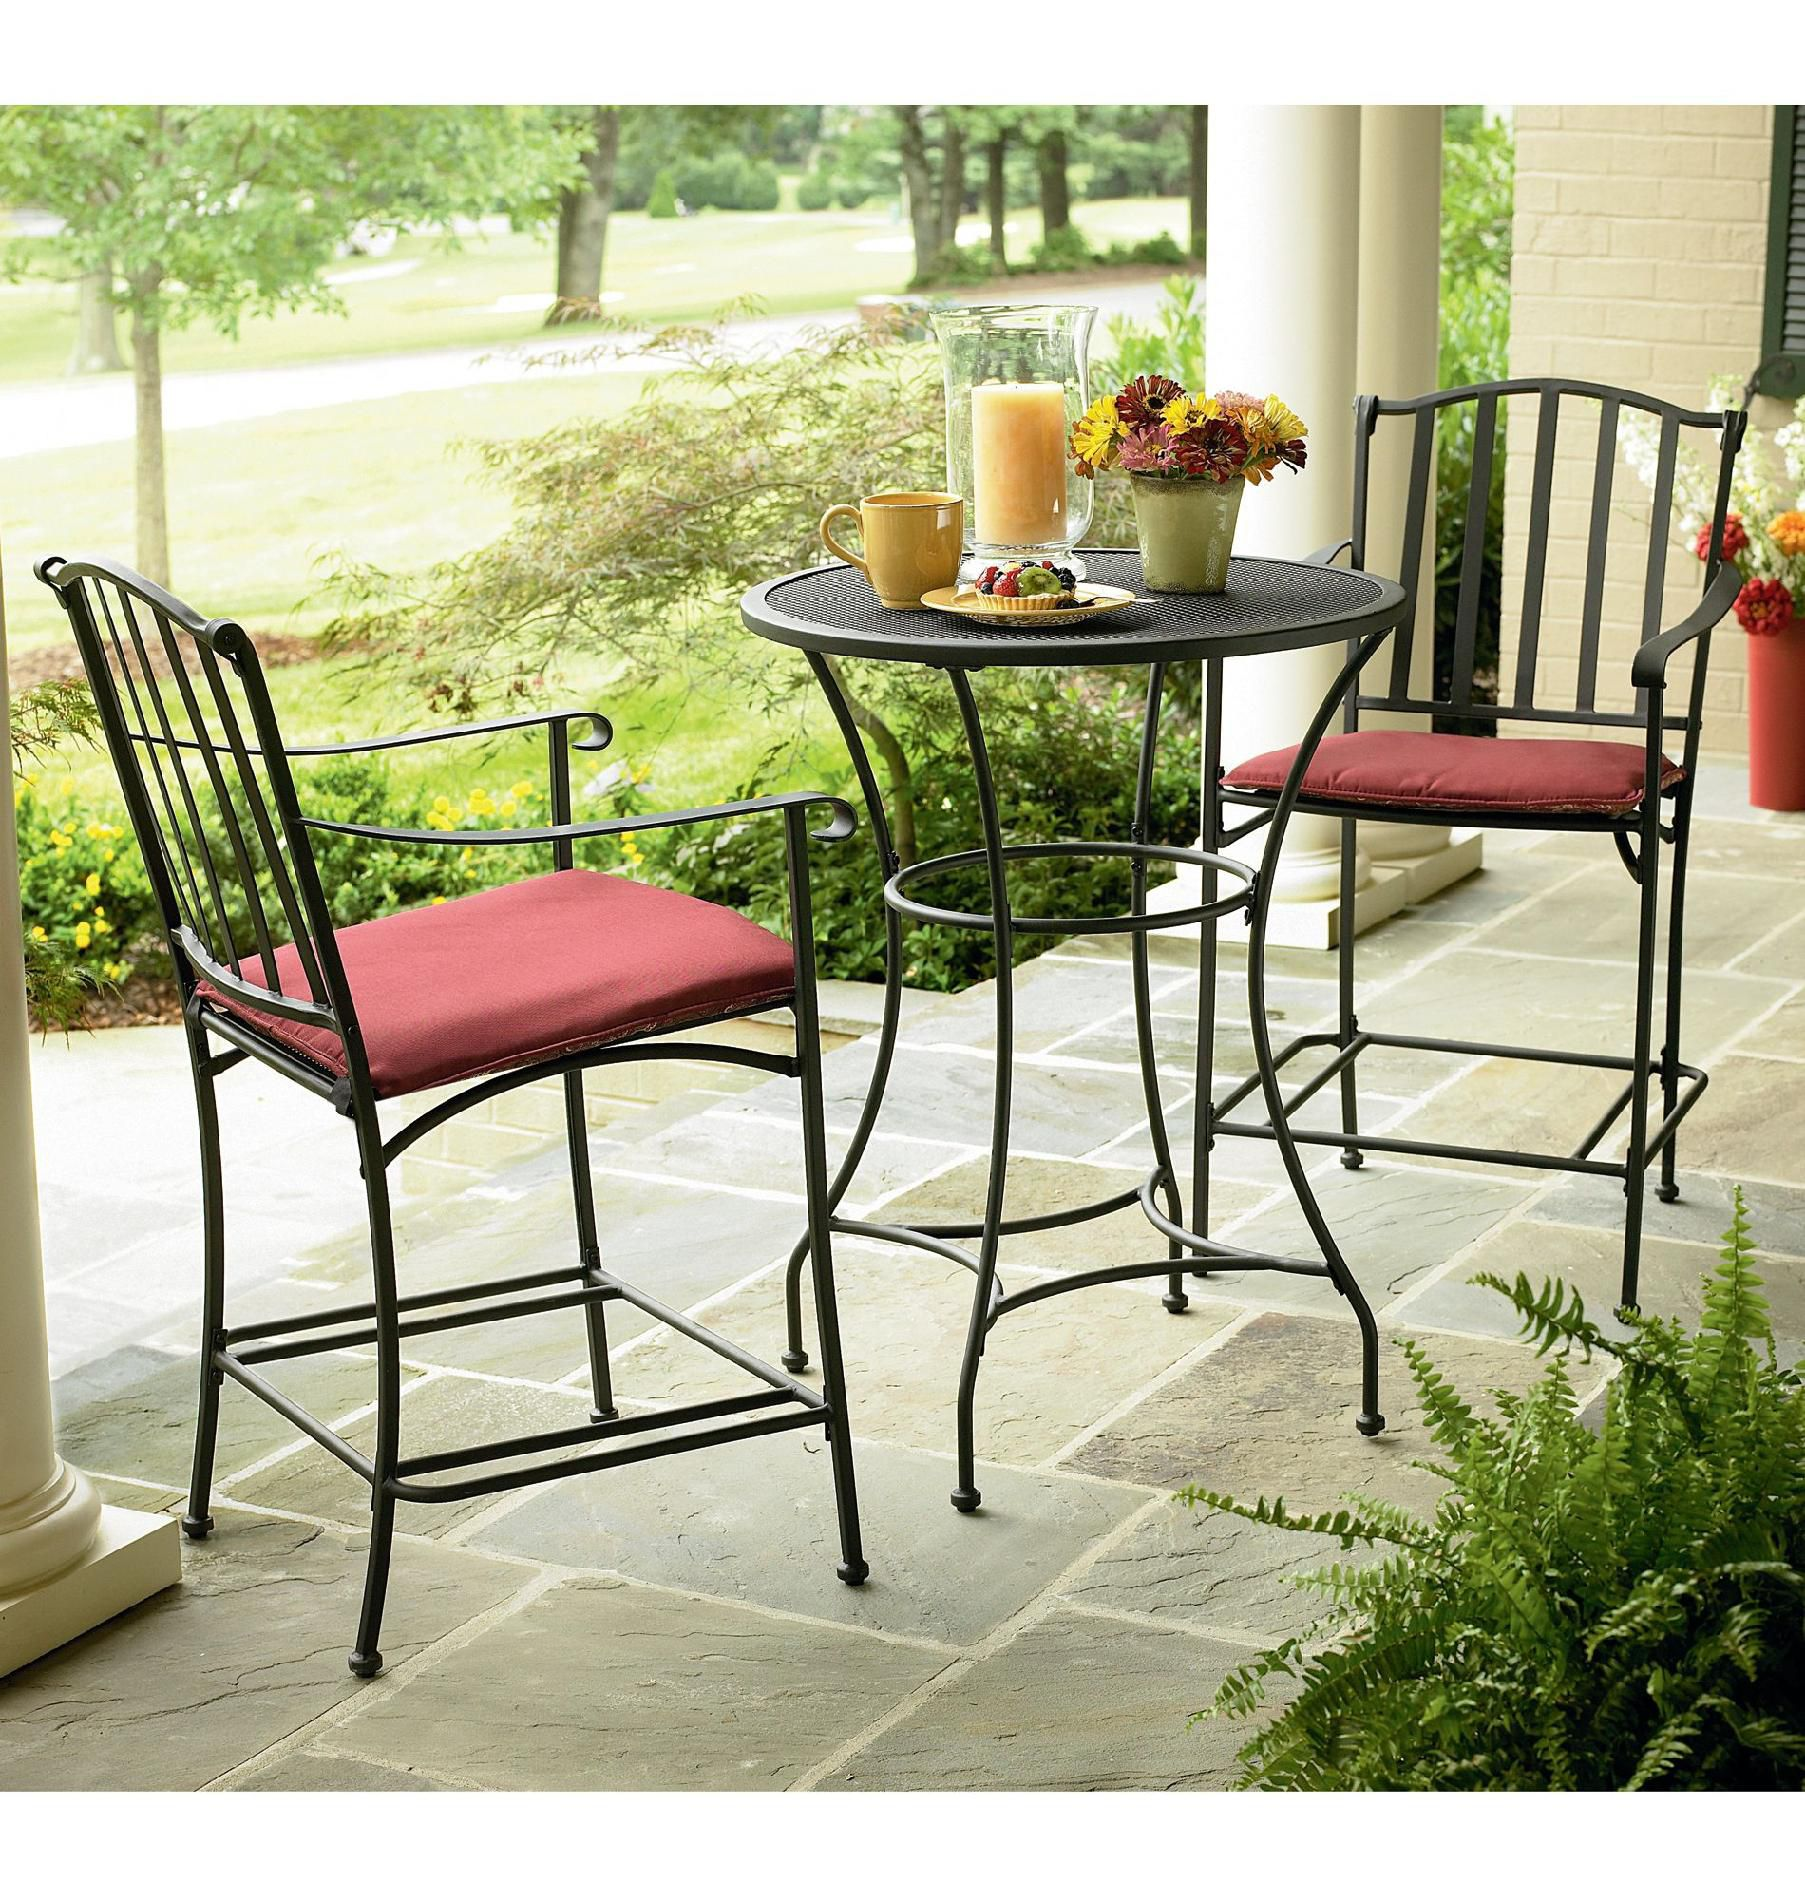 small bistro table and chair inexpensive banquet covers essential garden high wrought iron outdoor living